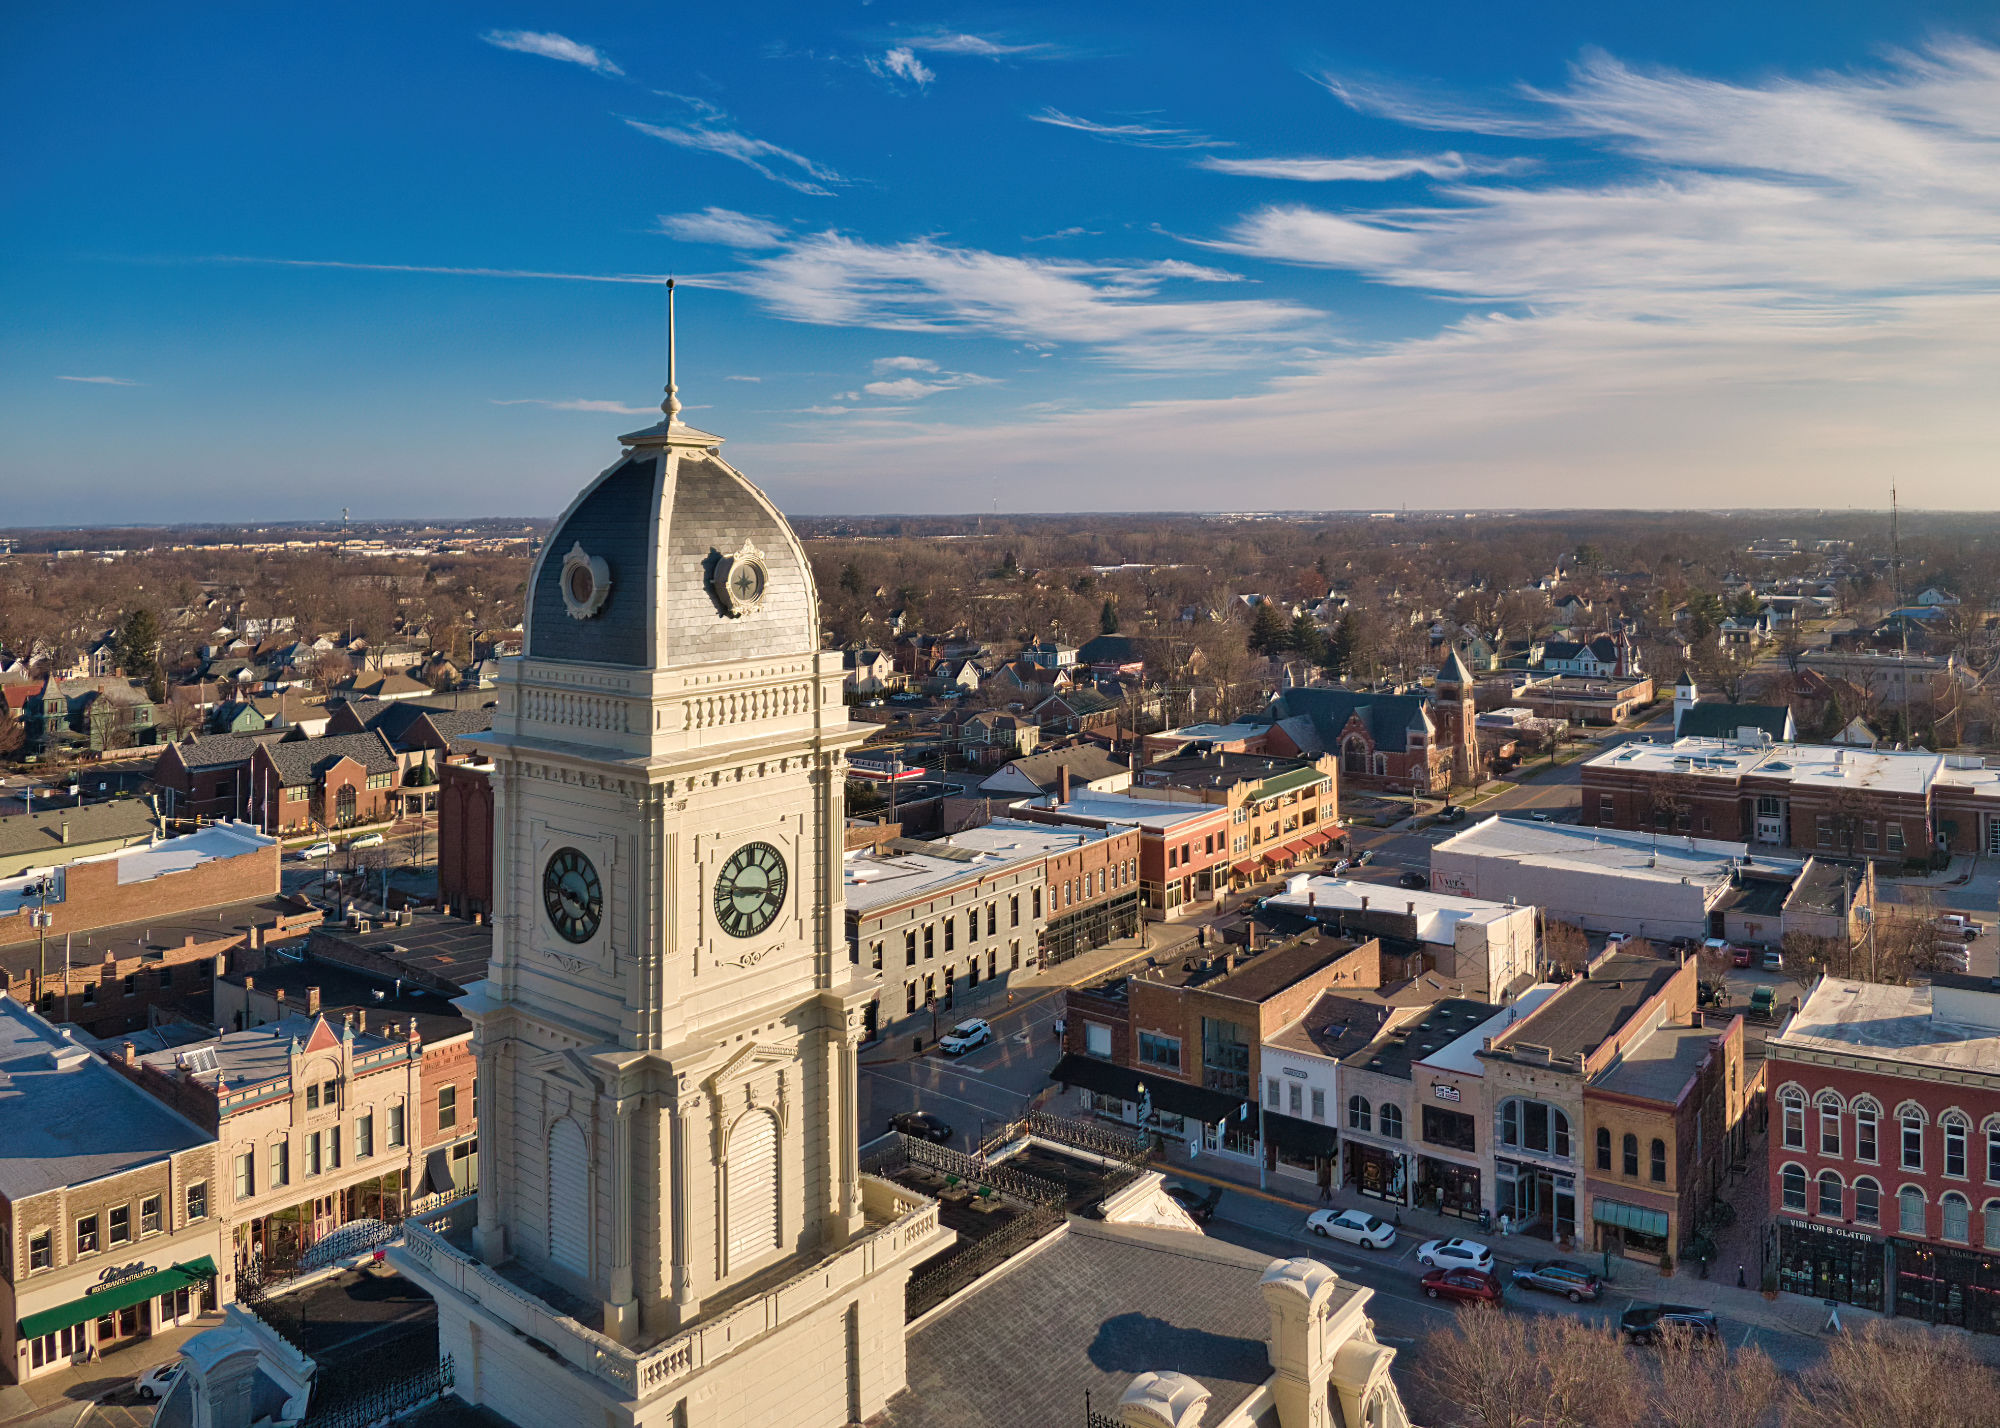 The Clock Tower in Noblesville, Indiana from the sky during a sunny winter Golden Hour